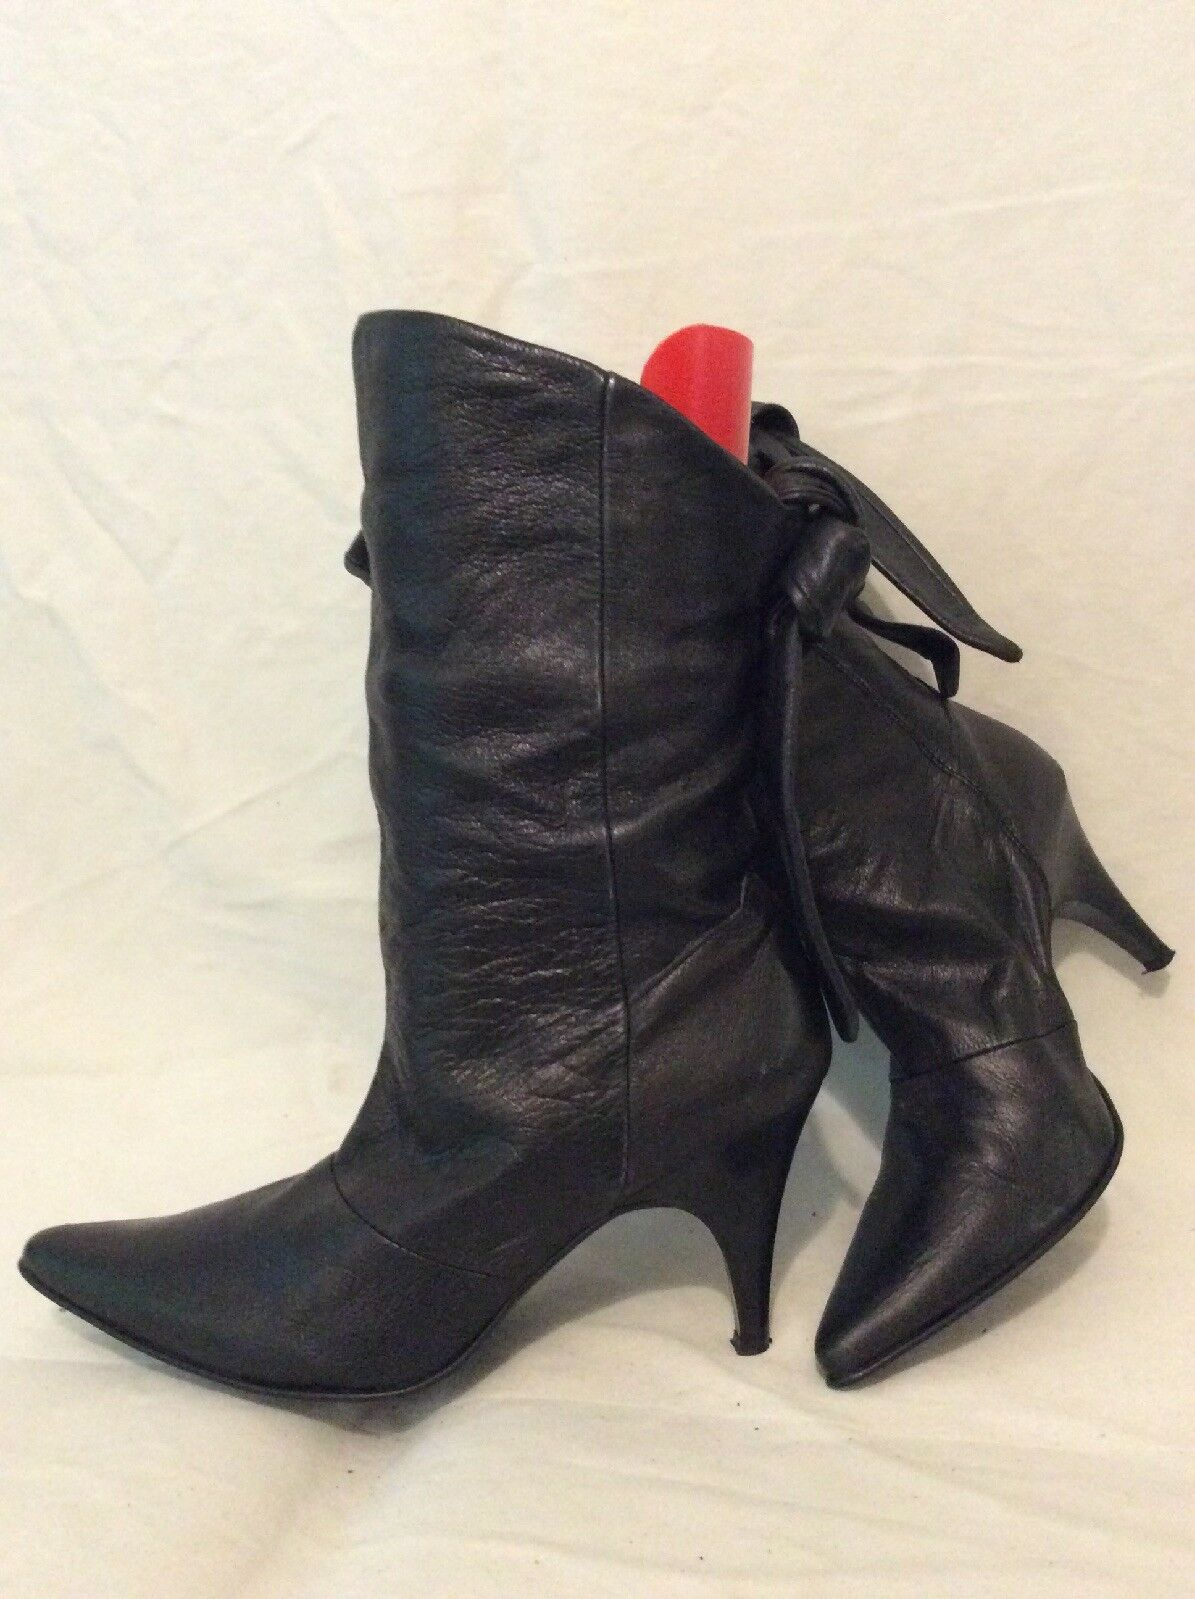 KG Black Mid Calf Leather Boots Size 40